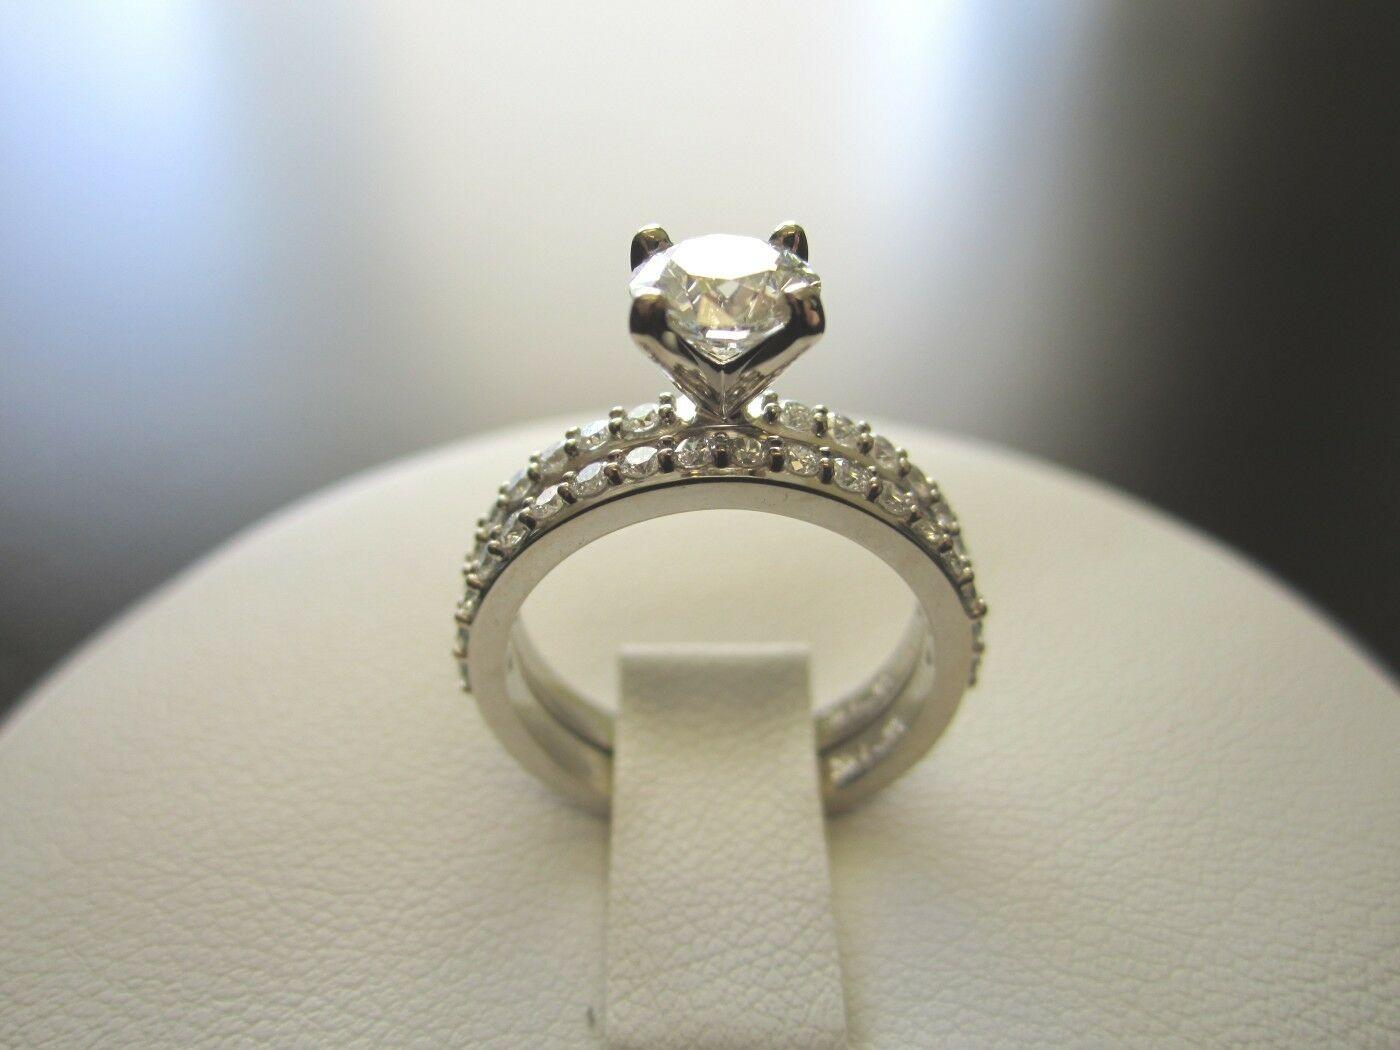 1.89 Ct D/vvs1 Round Cut 10k Yellow Gold Three Stone Engagement Wedding Ring Jewelry & Watches